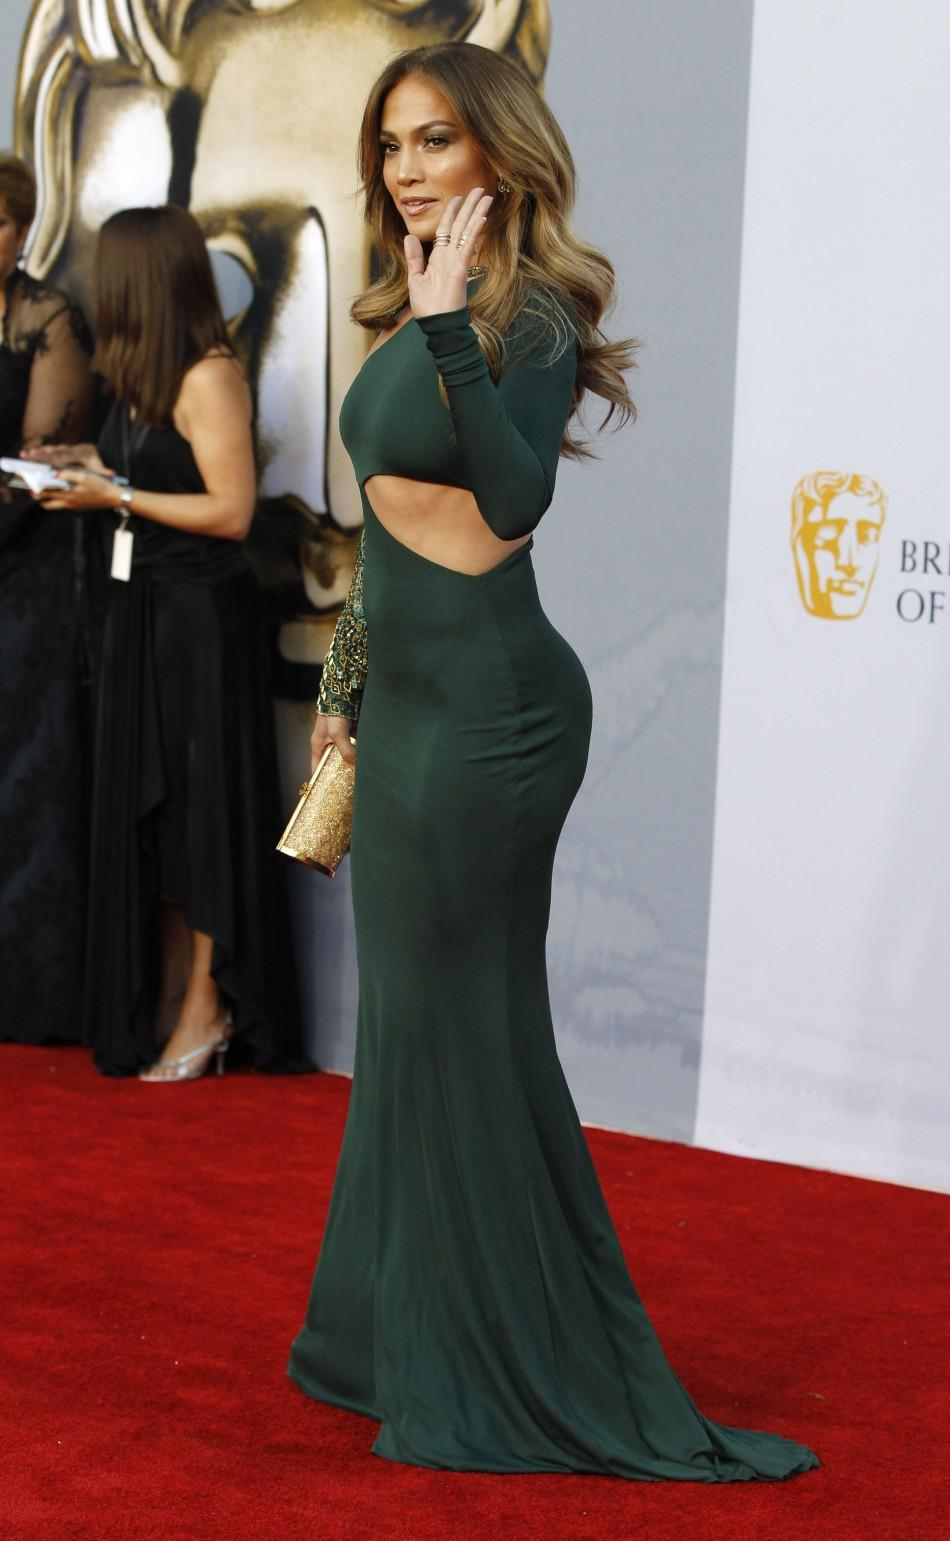 Jennifer Lopez arrives at the BAFTA Brits to Watch event in Los Angeles